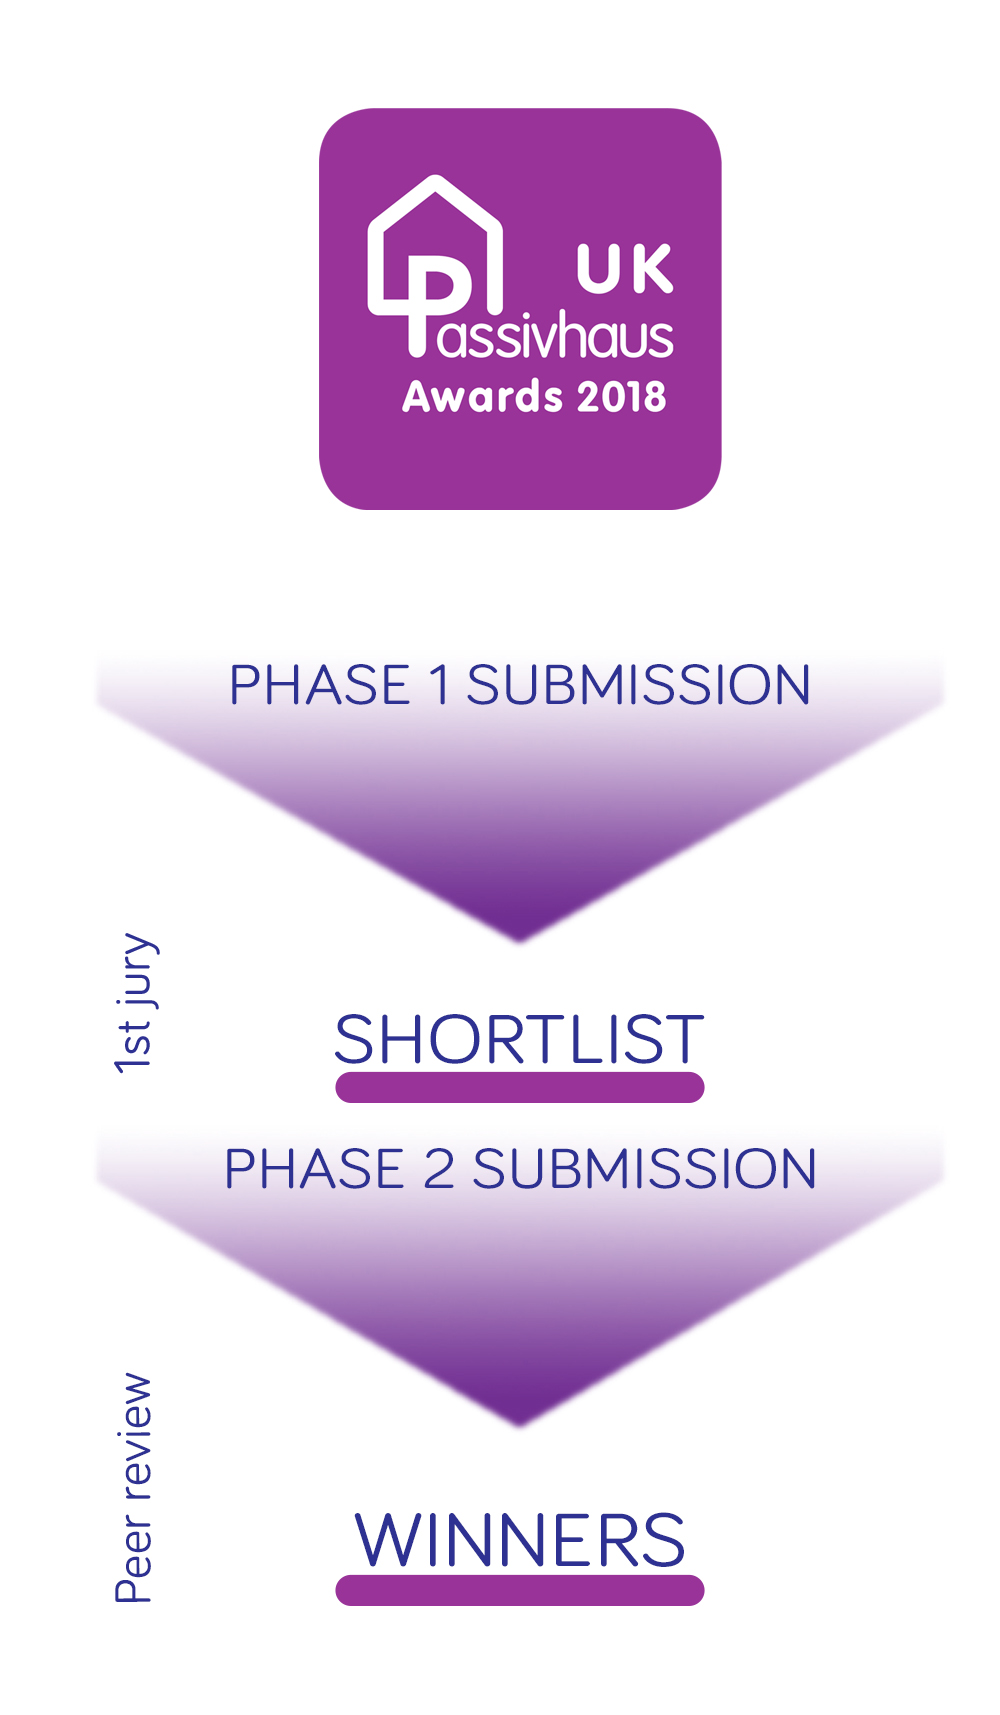 2018 UK Passivhaus Awards Journey